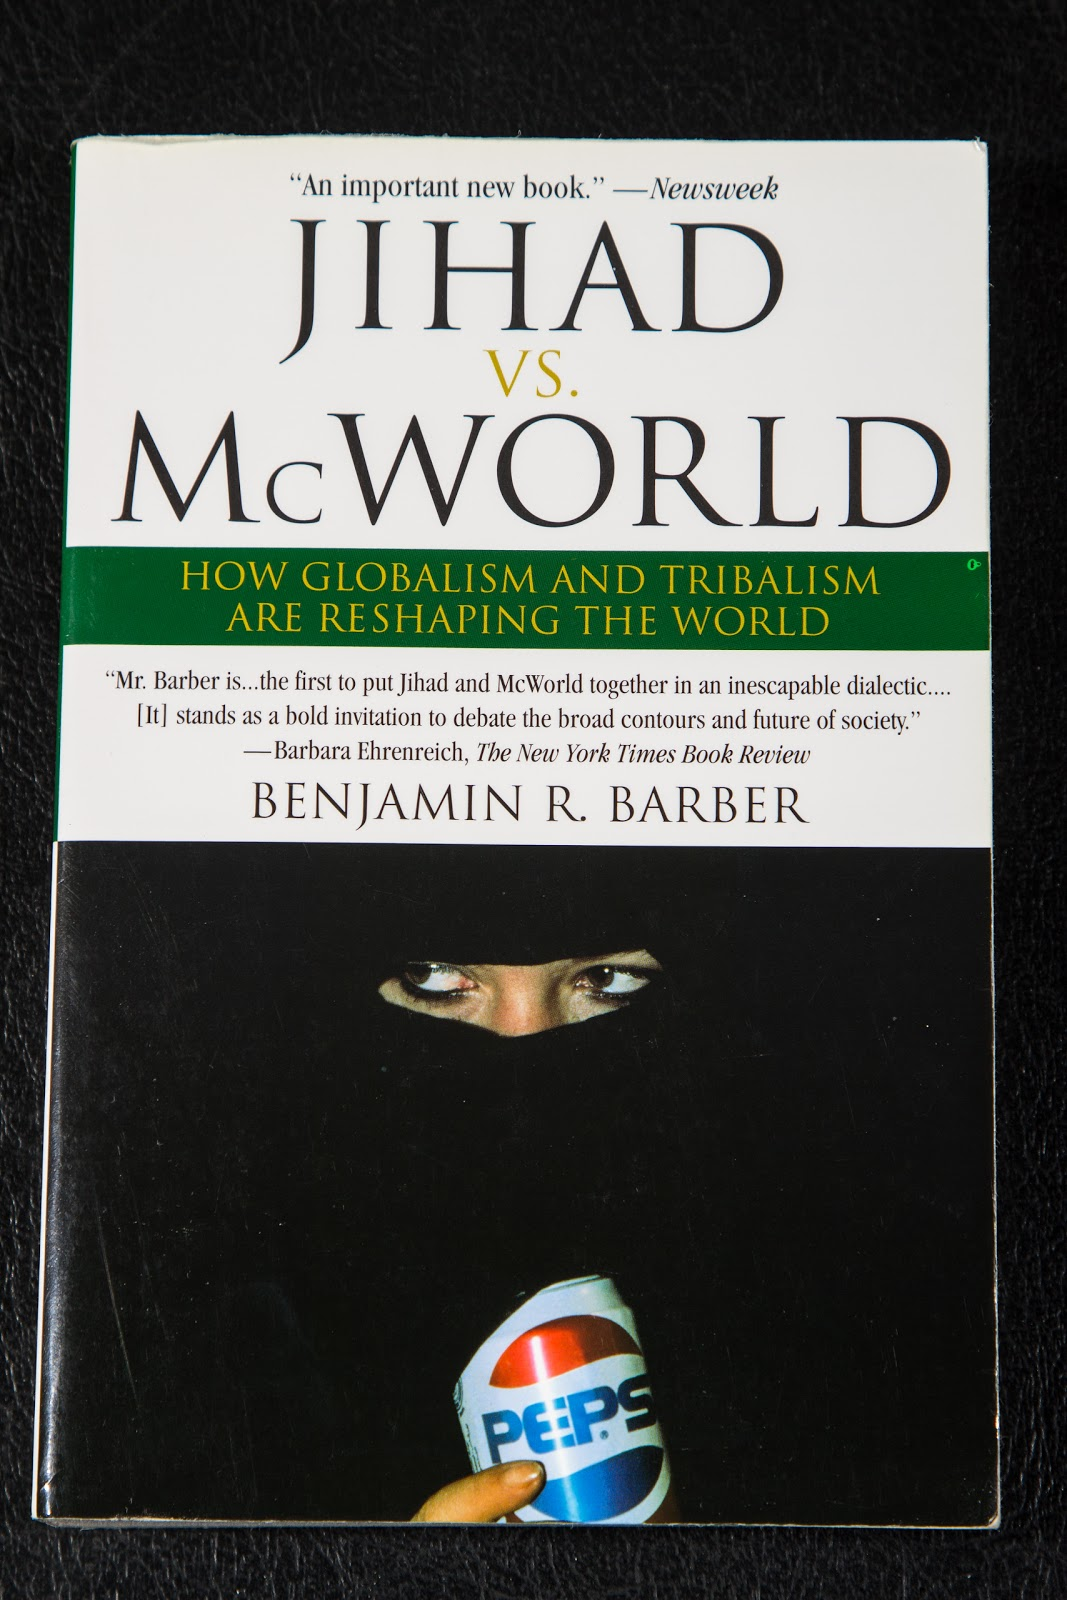 jihad vs mcworld Jihad vs mcworld summary essay, law school personal statement editing service, does ucla have a creative writing program.